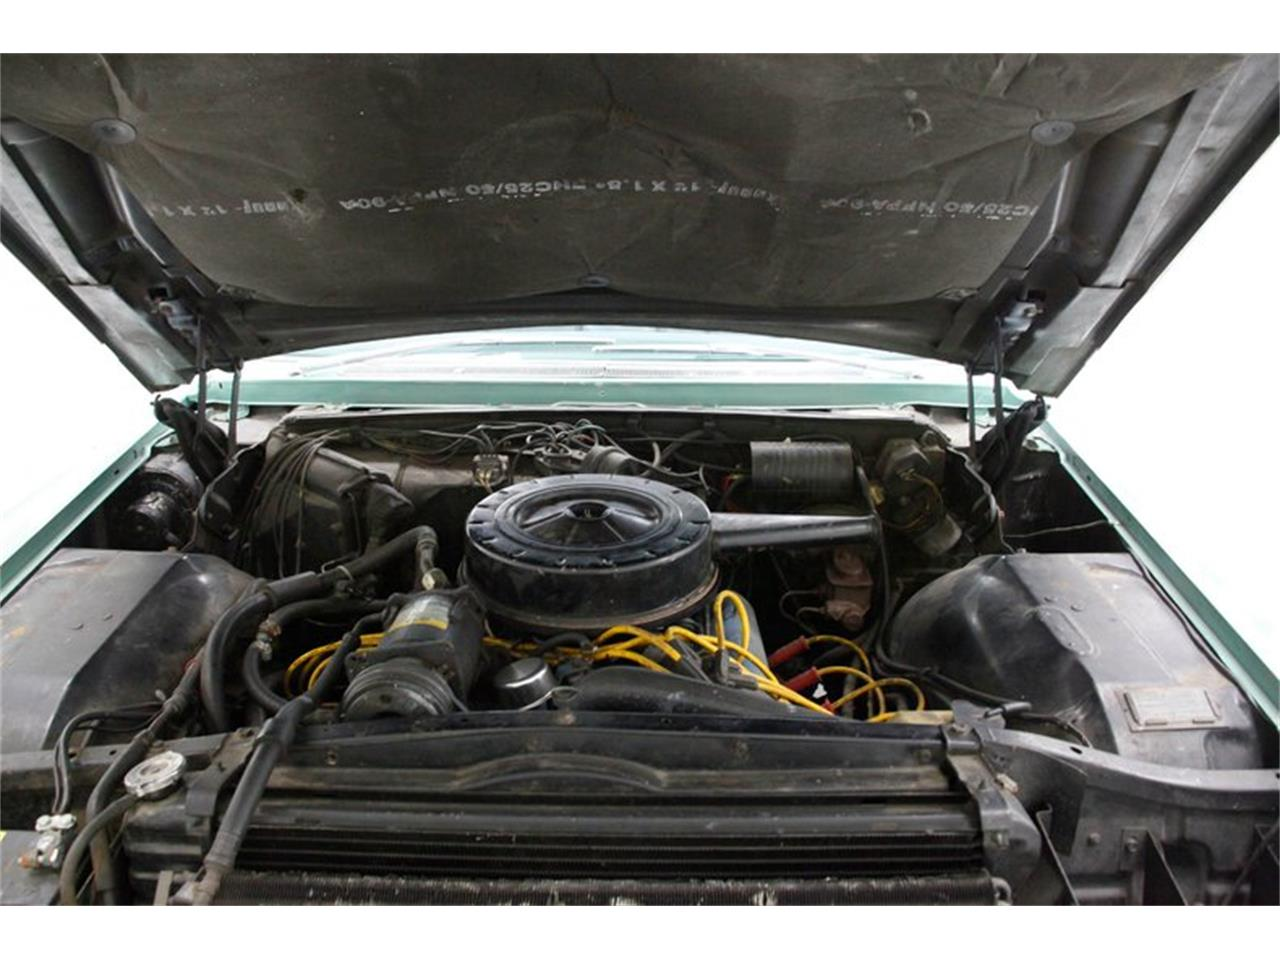 1966 Cadillac DeVille for sale in Morgantown, PA ...